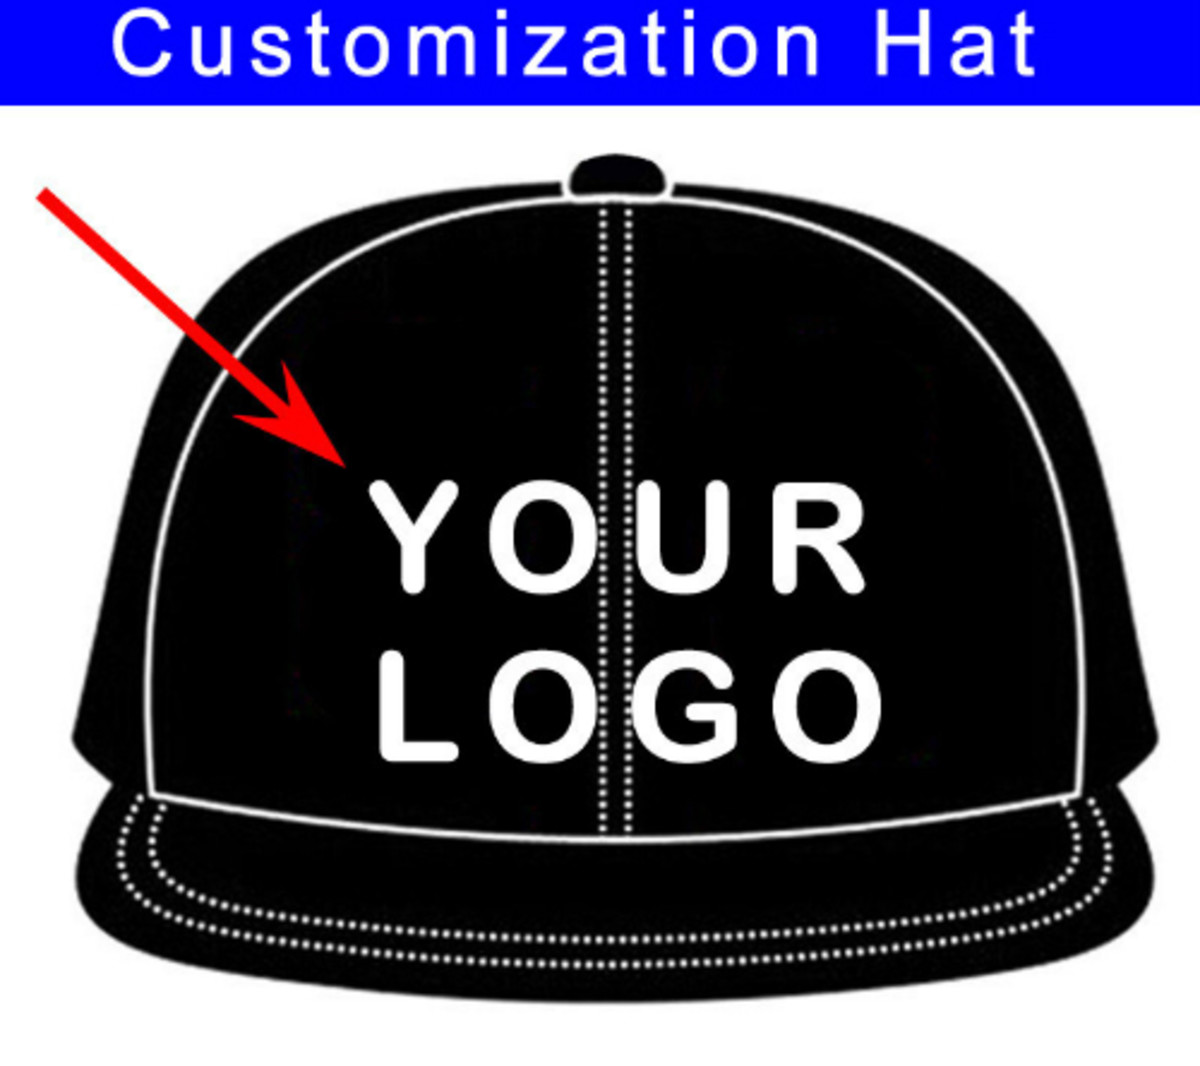 5 Sites Like LIDS - For Custom Hats